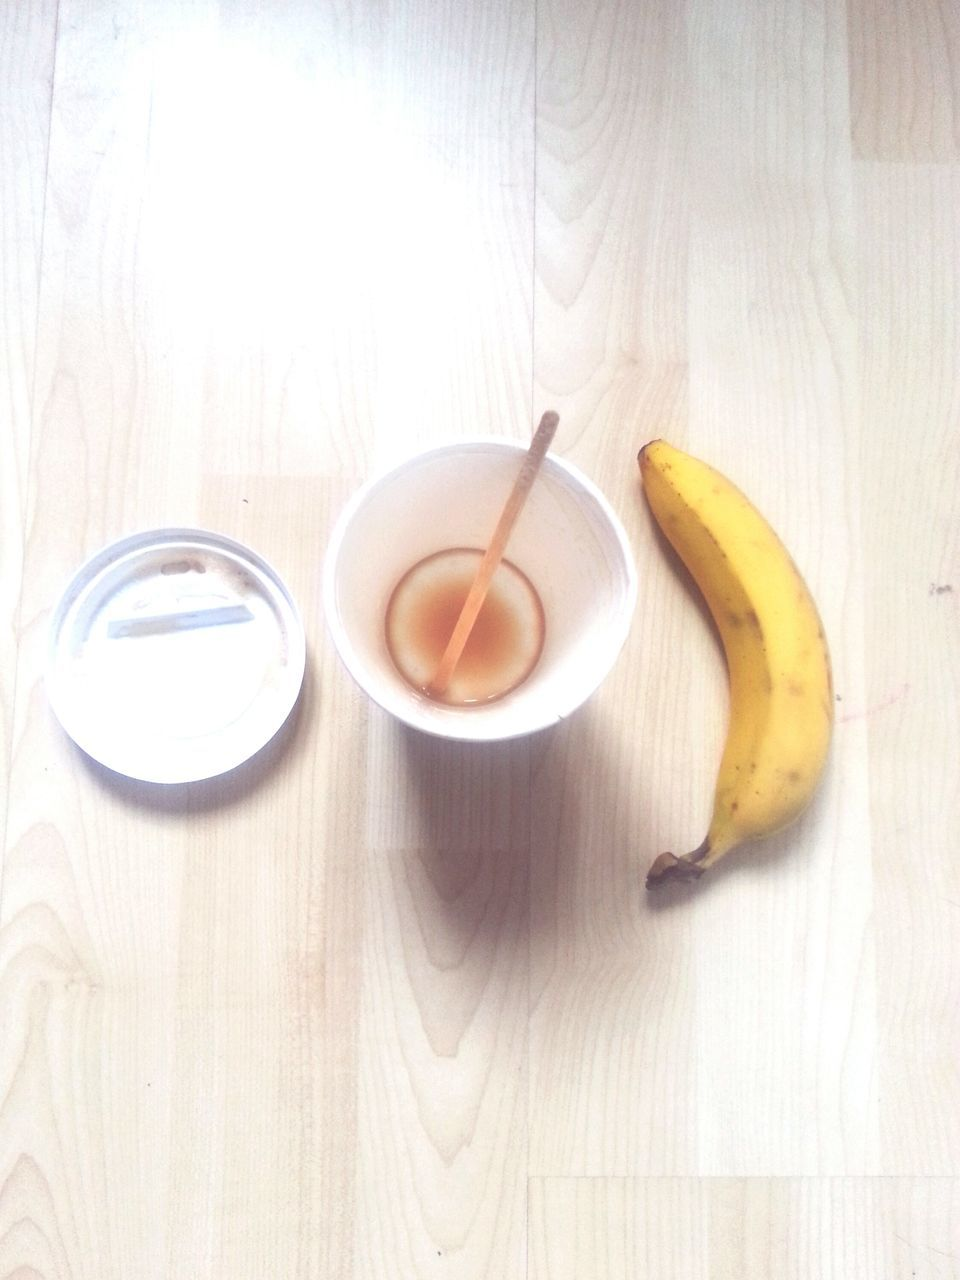 food and drink, fruit, healthy eating, banana, freshness, table, food, high angle view, no people, indoors, refreshment, healthy lifestyle, drink, banana peel, day, close-up